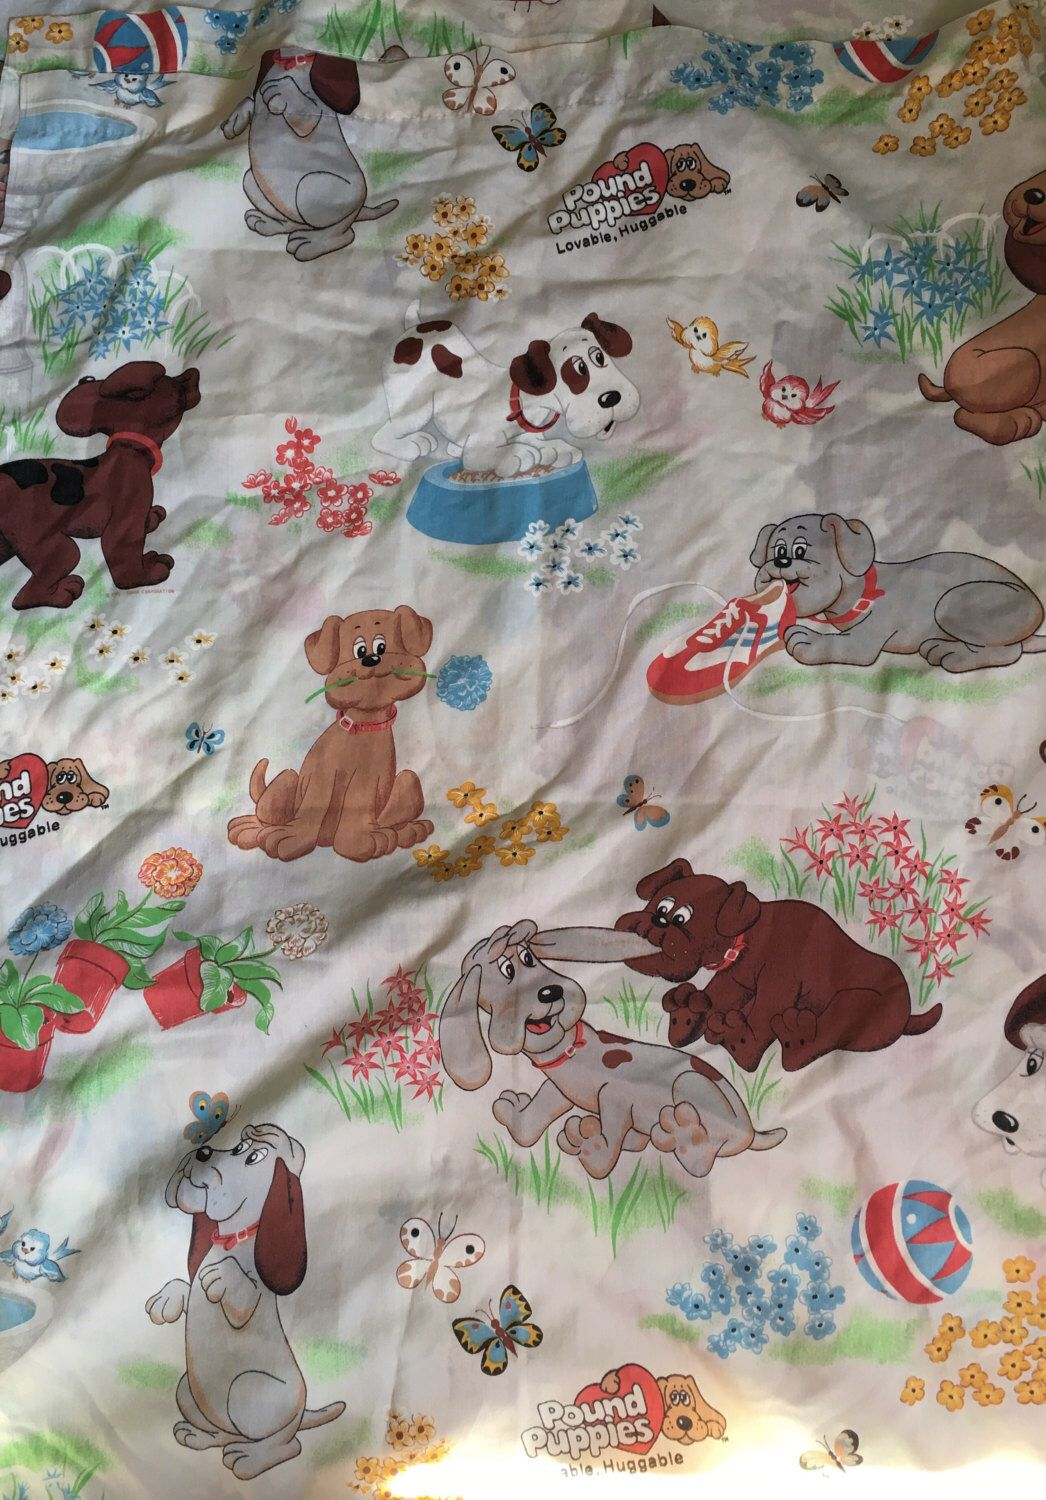 Vintage pound puppies twin flat sheet by bibb 1980s cartoon